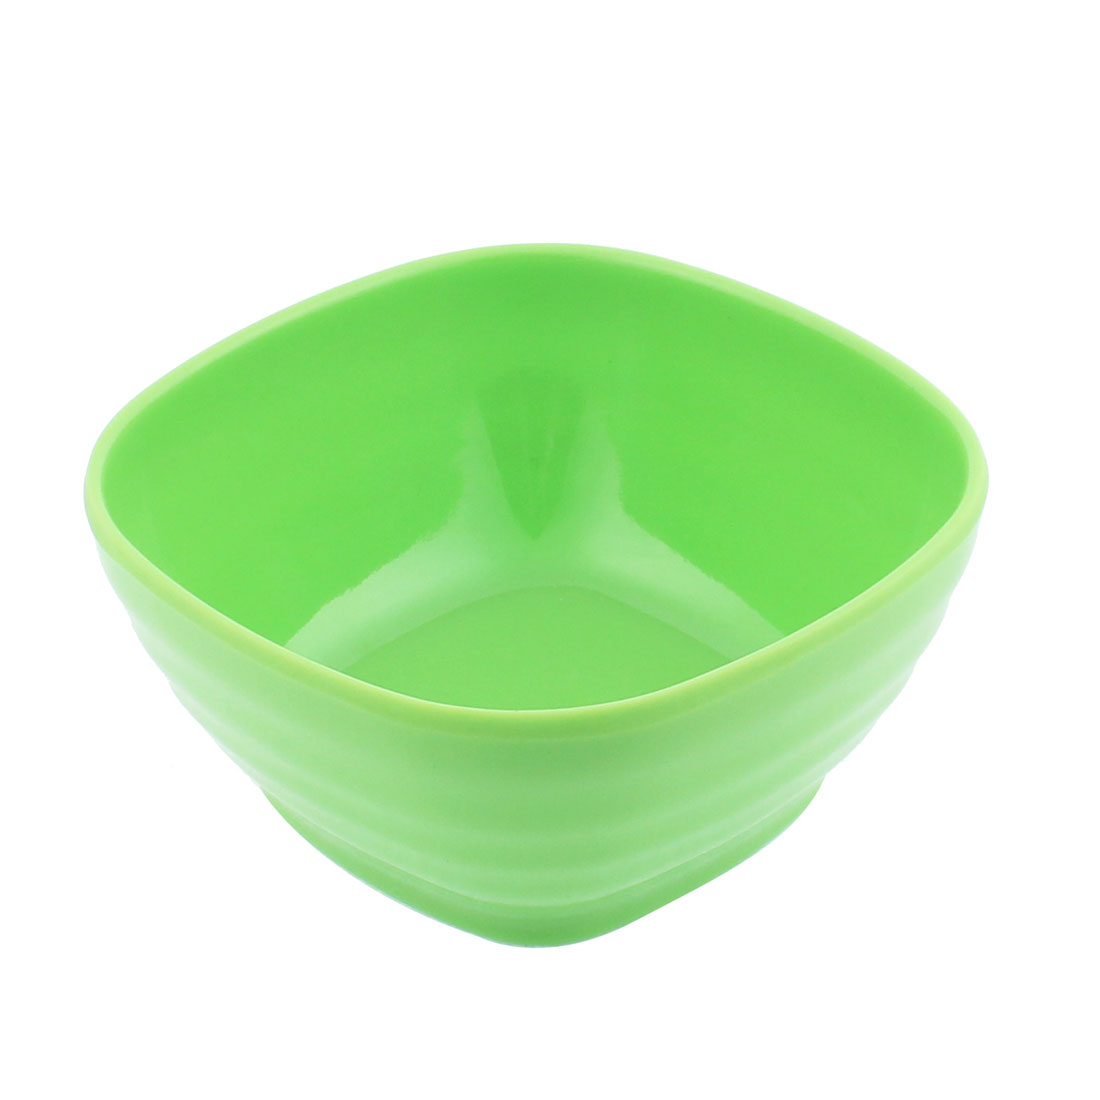 Plastic Square Shape Soup Cereal Fruits Rice Salad Bowl Green